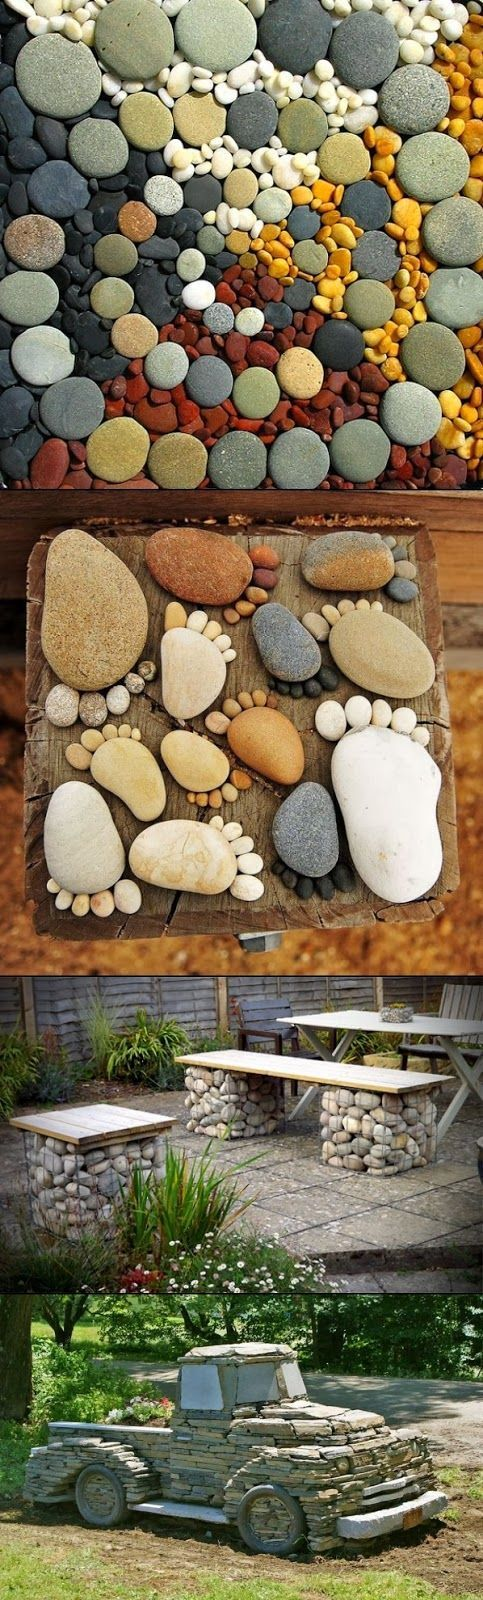 """25 Amazing DIY Ideas How to Upgrade your Garden this Year [   """"I might have to make a table out of these stones! Easy Garden DIY Projects with Stones I love the pickup!"""",   """"Home-Decor: Easy Garden DIY Projects with Stones. That truck is so cool!"""",   """"Take stones, rocks, pebbles you find in the garden and turn them into these beautiful ideas"""",   """"Easy Garden DIY Projects with Stones Call today or stop by for a tour of our facility! Ideal for Outdoor gear, Furniture, Antiques, Collectibles…"""